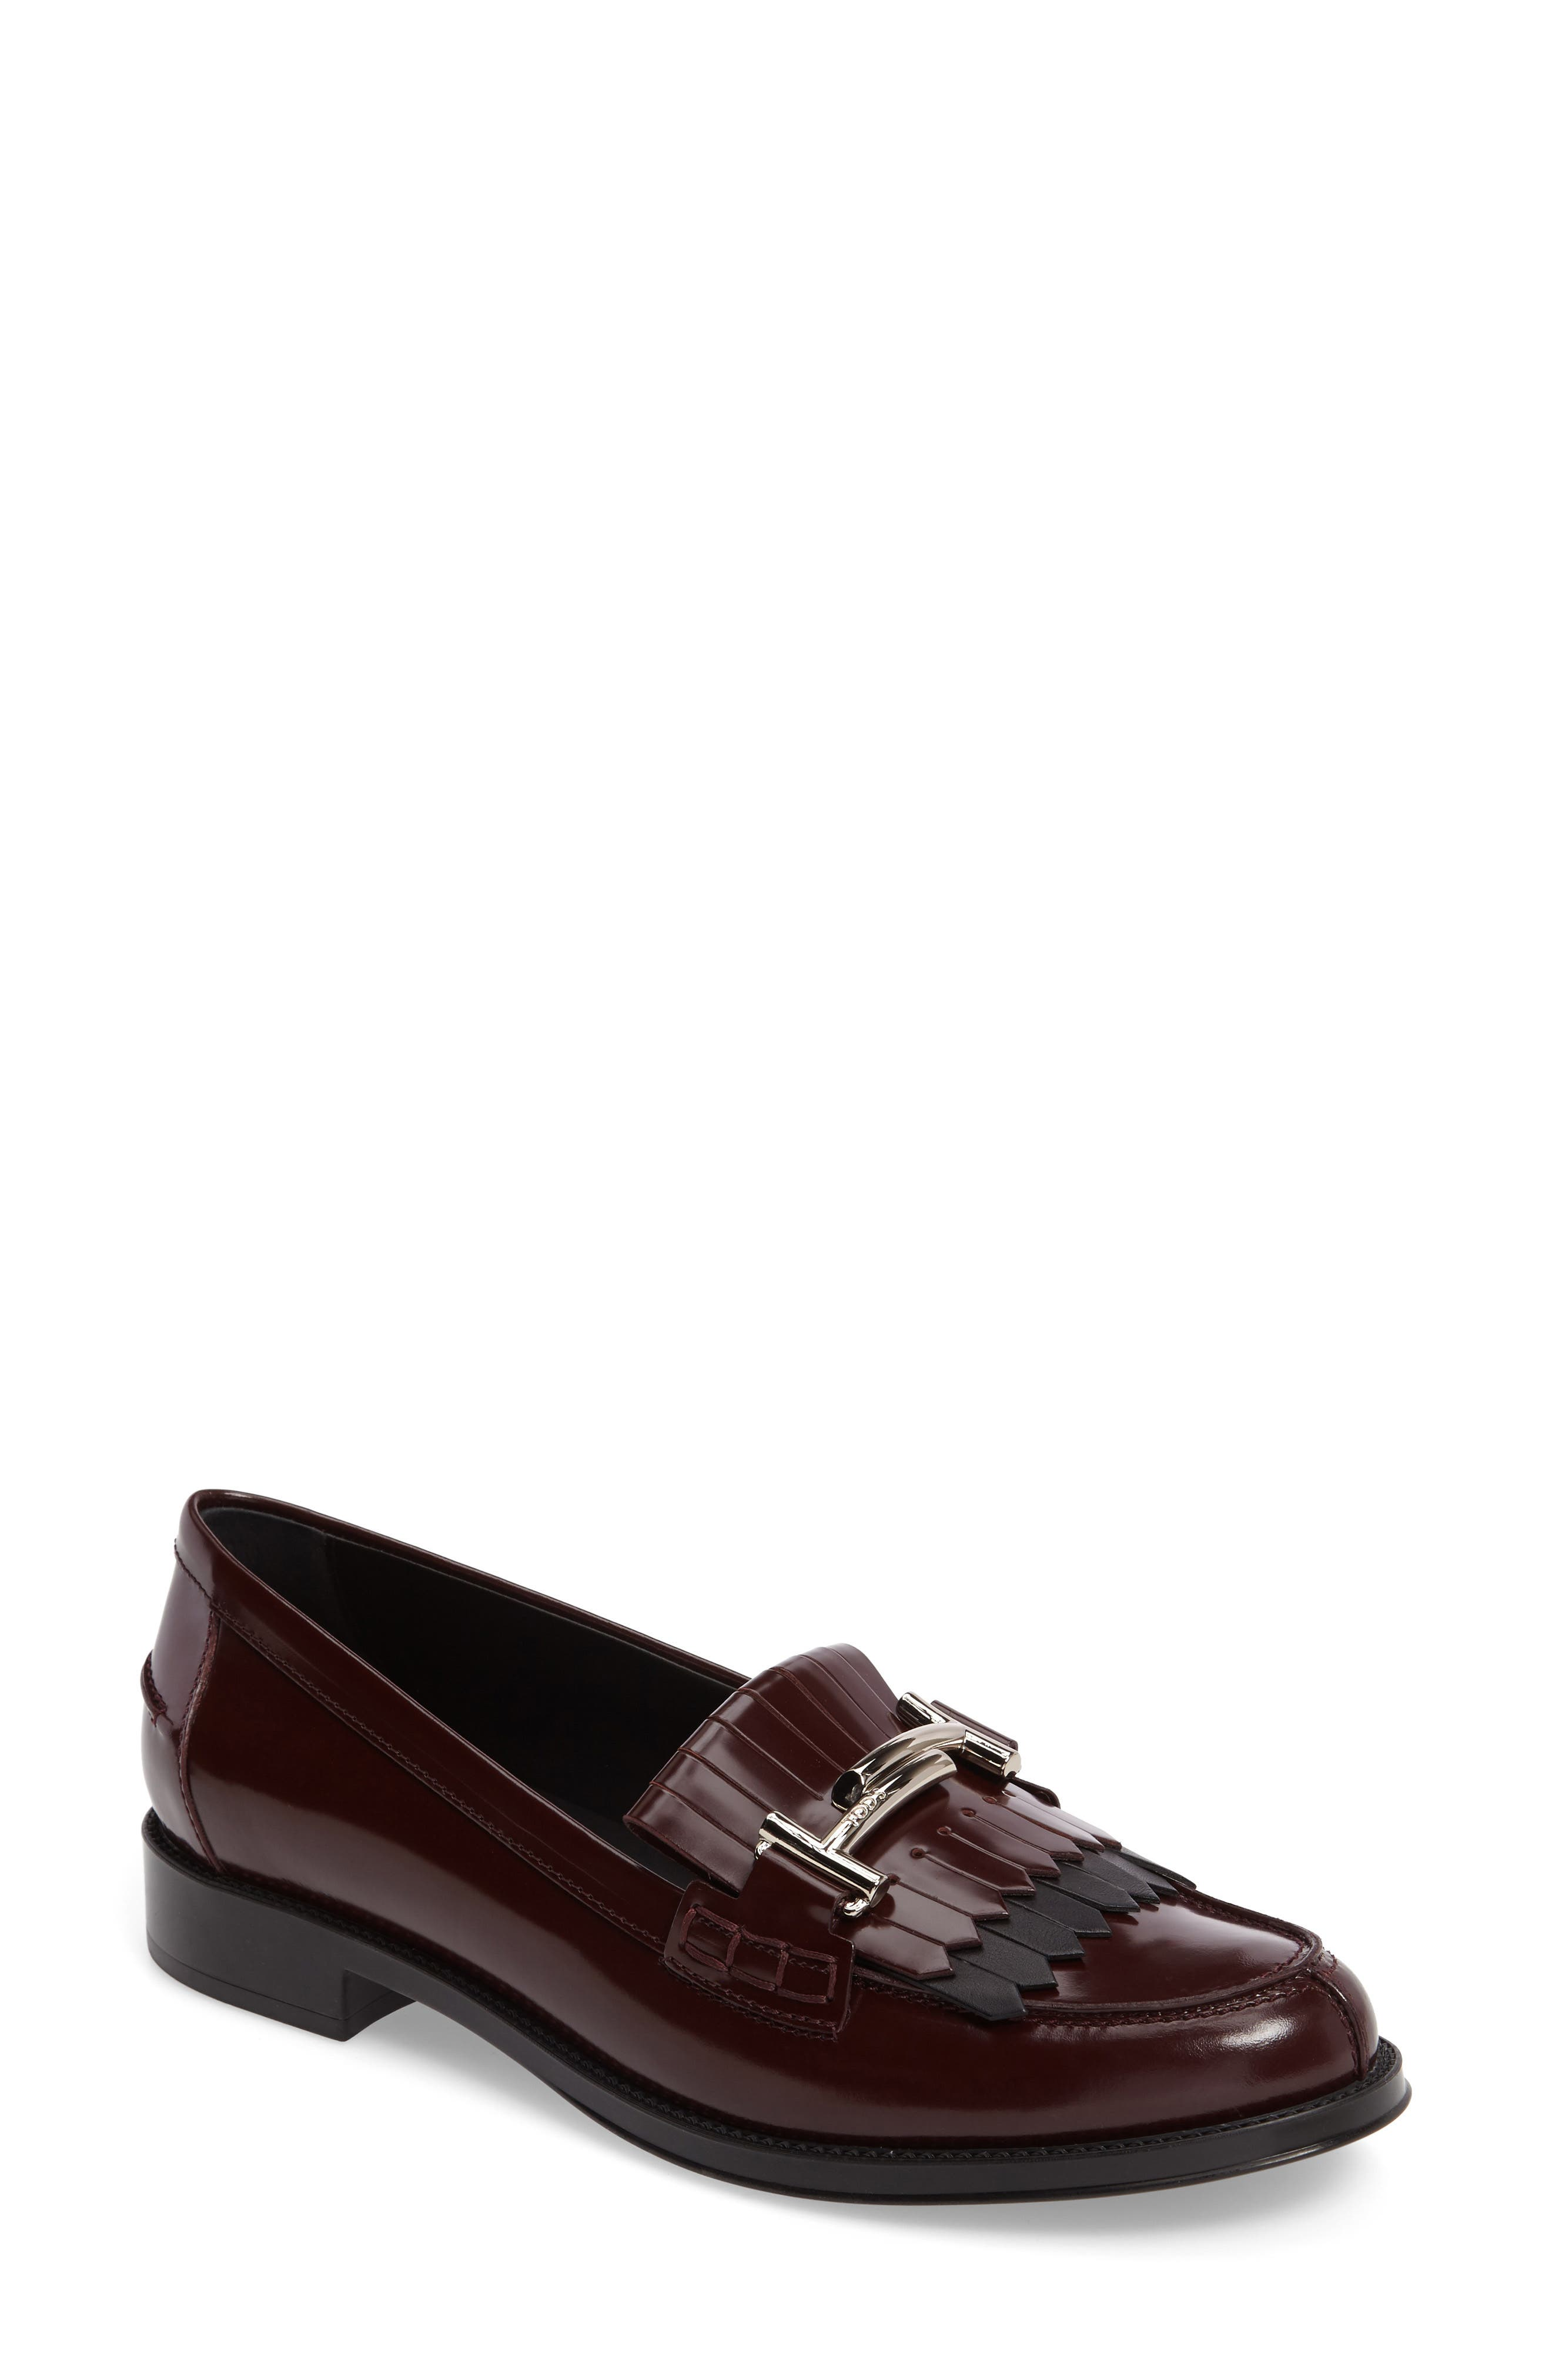 TODS Double T Kiltie Fringe Loafer